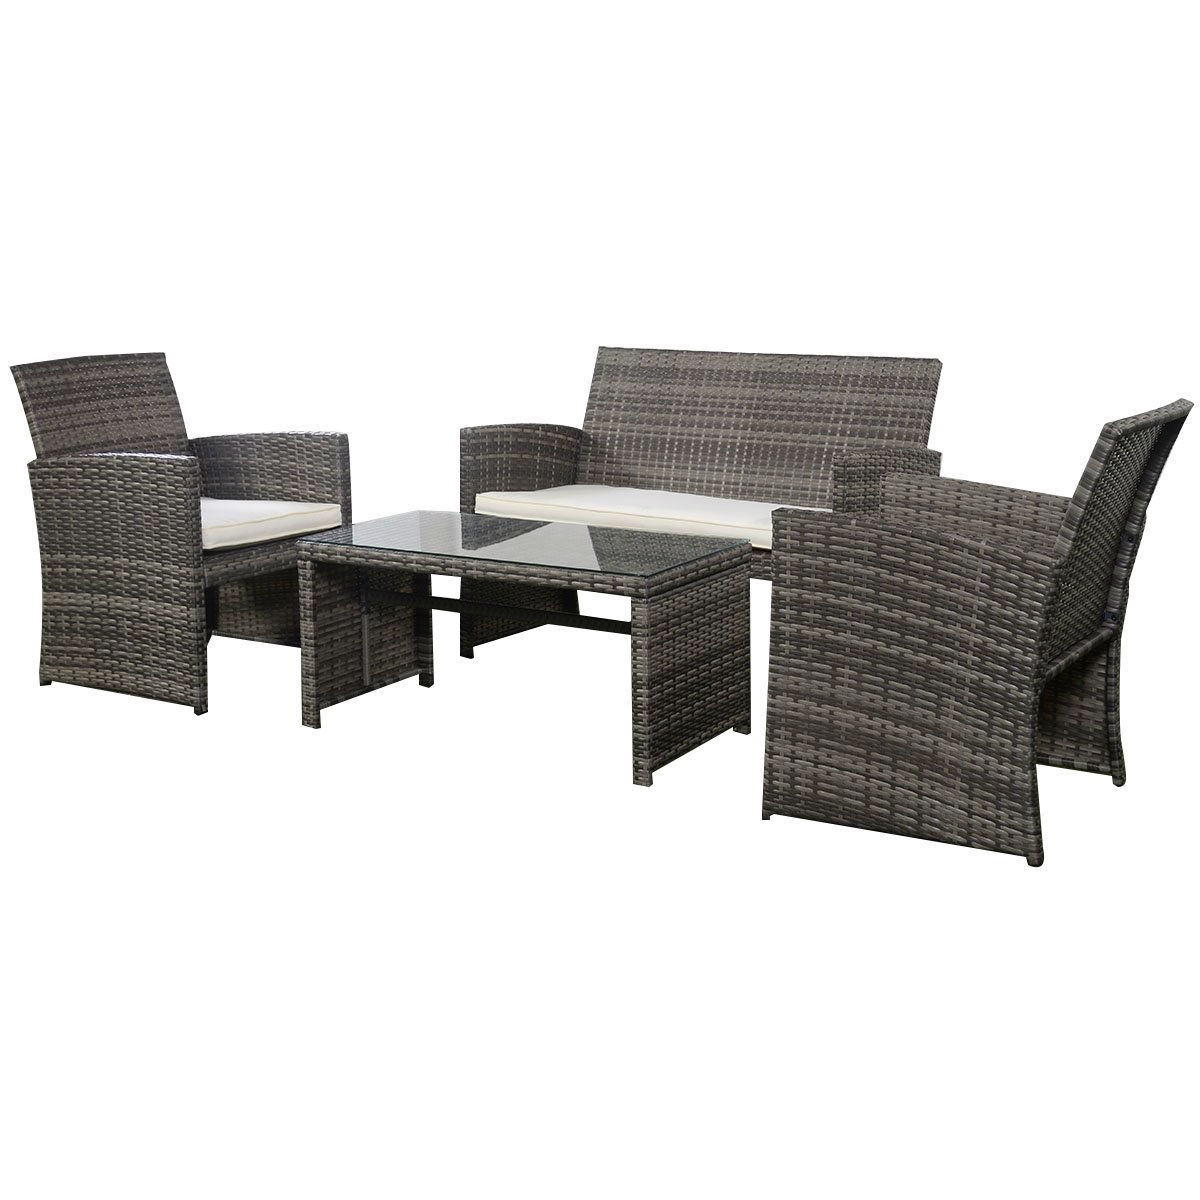 Grey Resin Wicker Rattan 4 Piece Patio Furniture Set With Seat Cushions